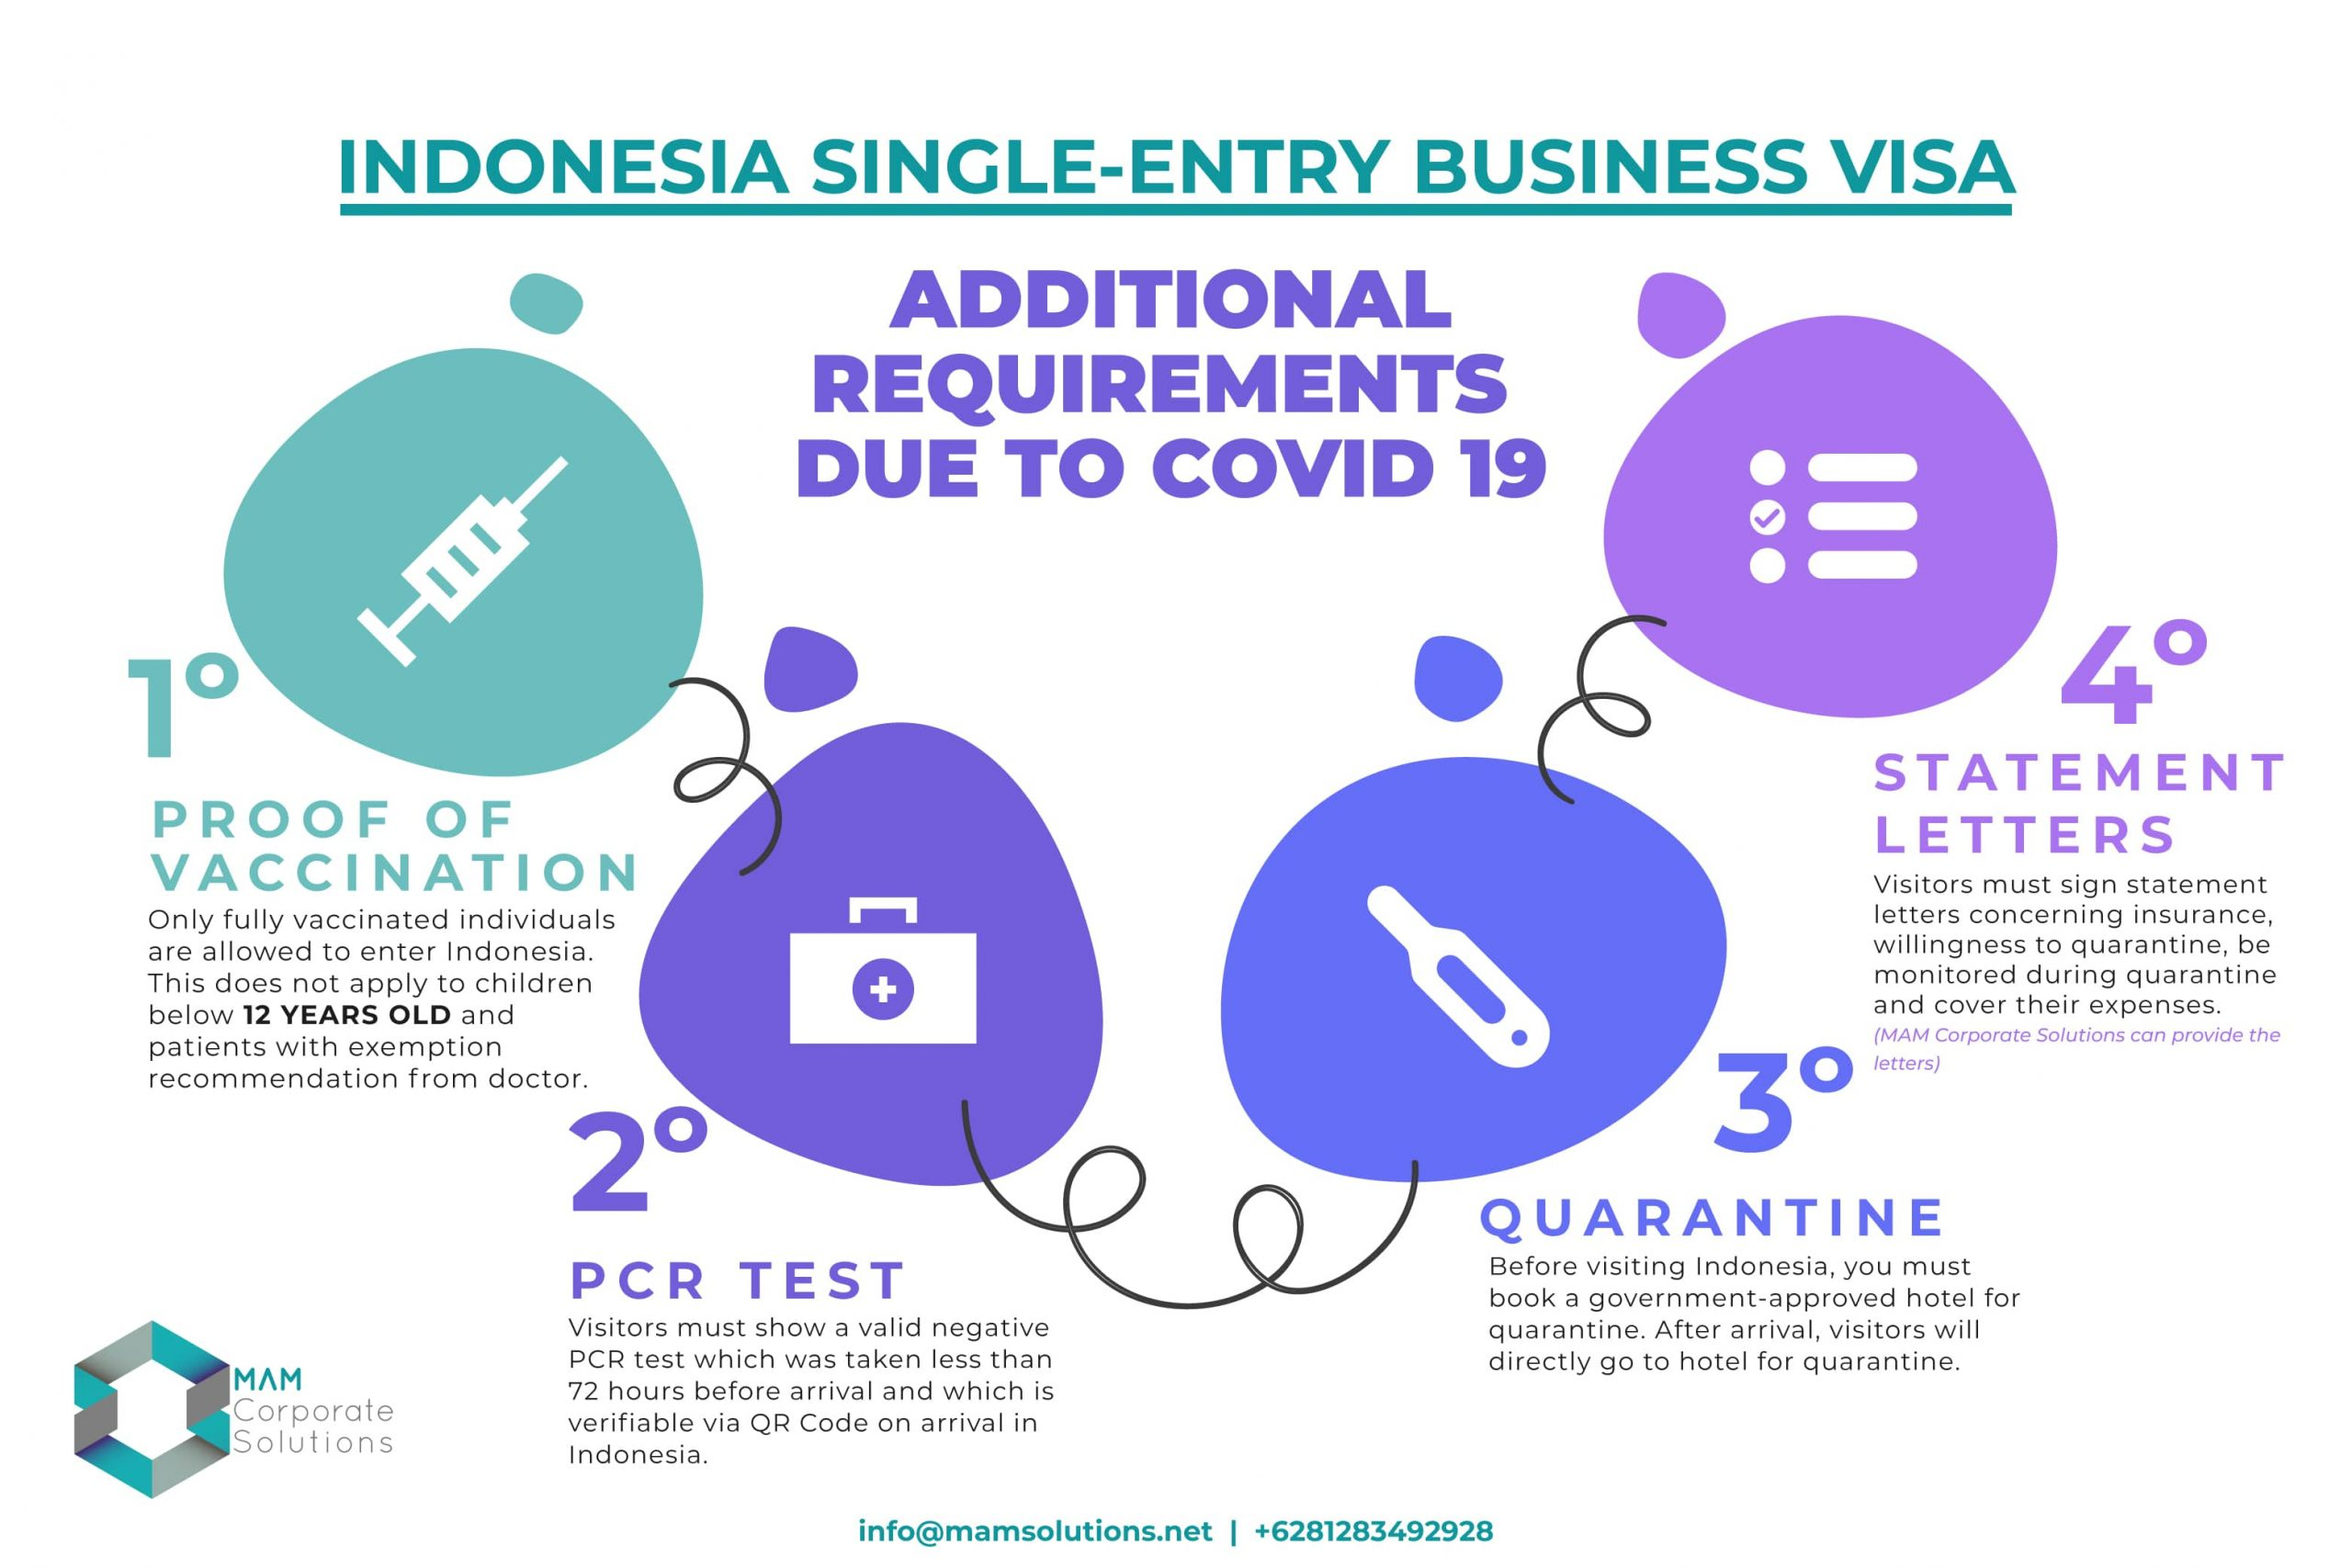 Indonesia Single Entry Business Visa | MAM Corporate Solutions